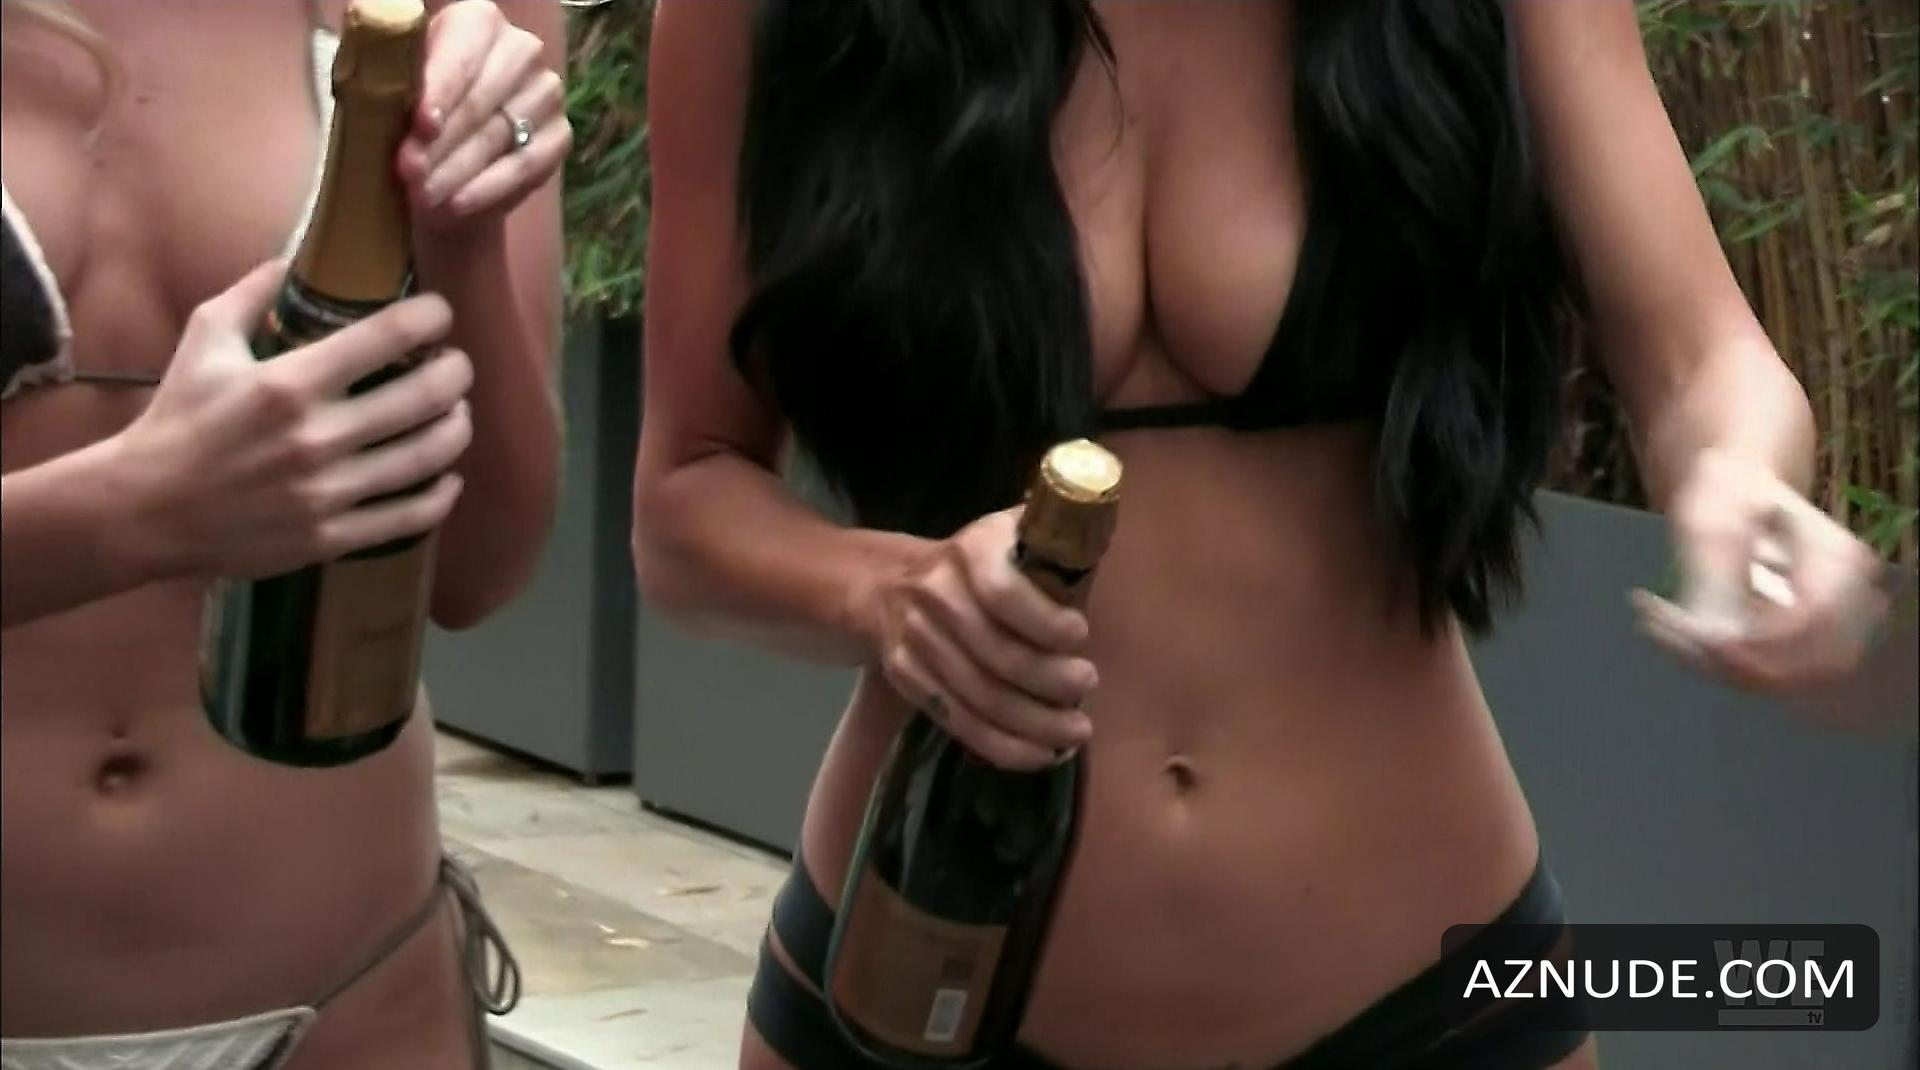 Jayde nicole porn video where you